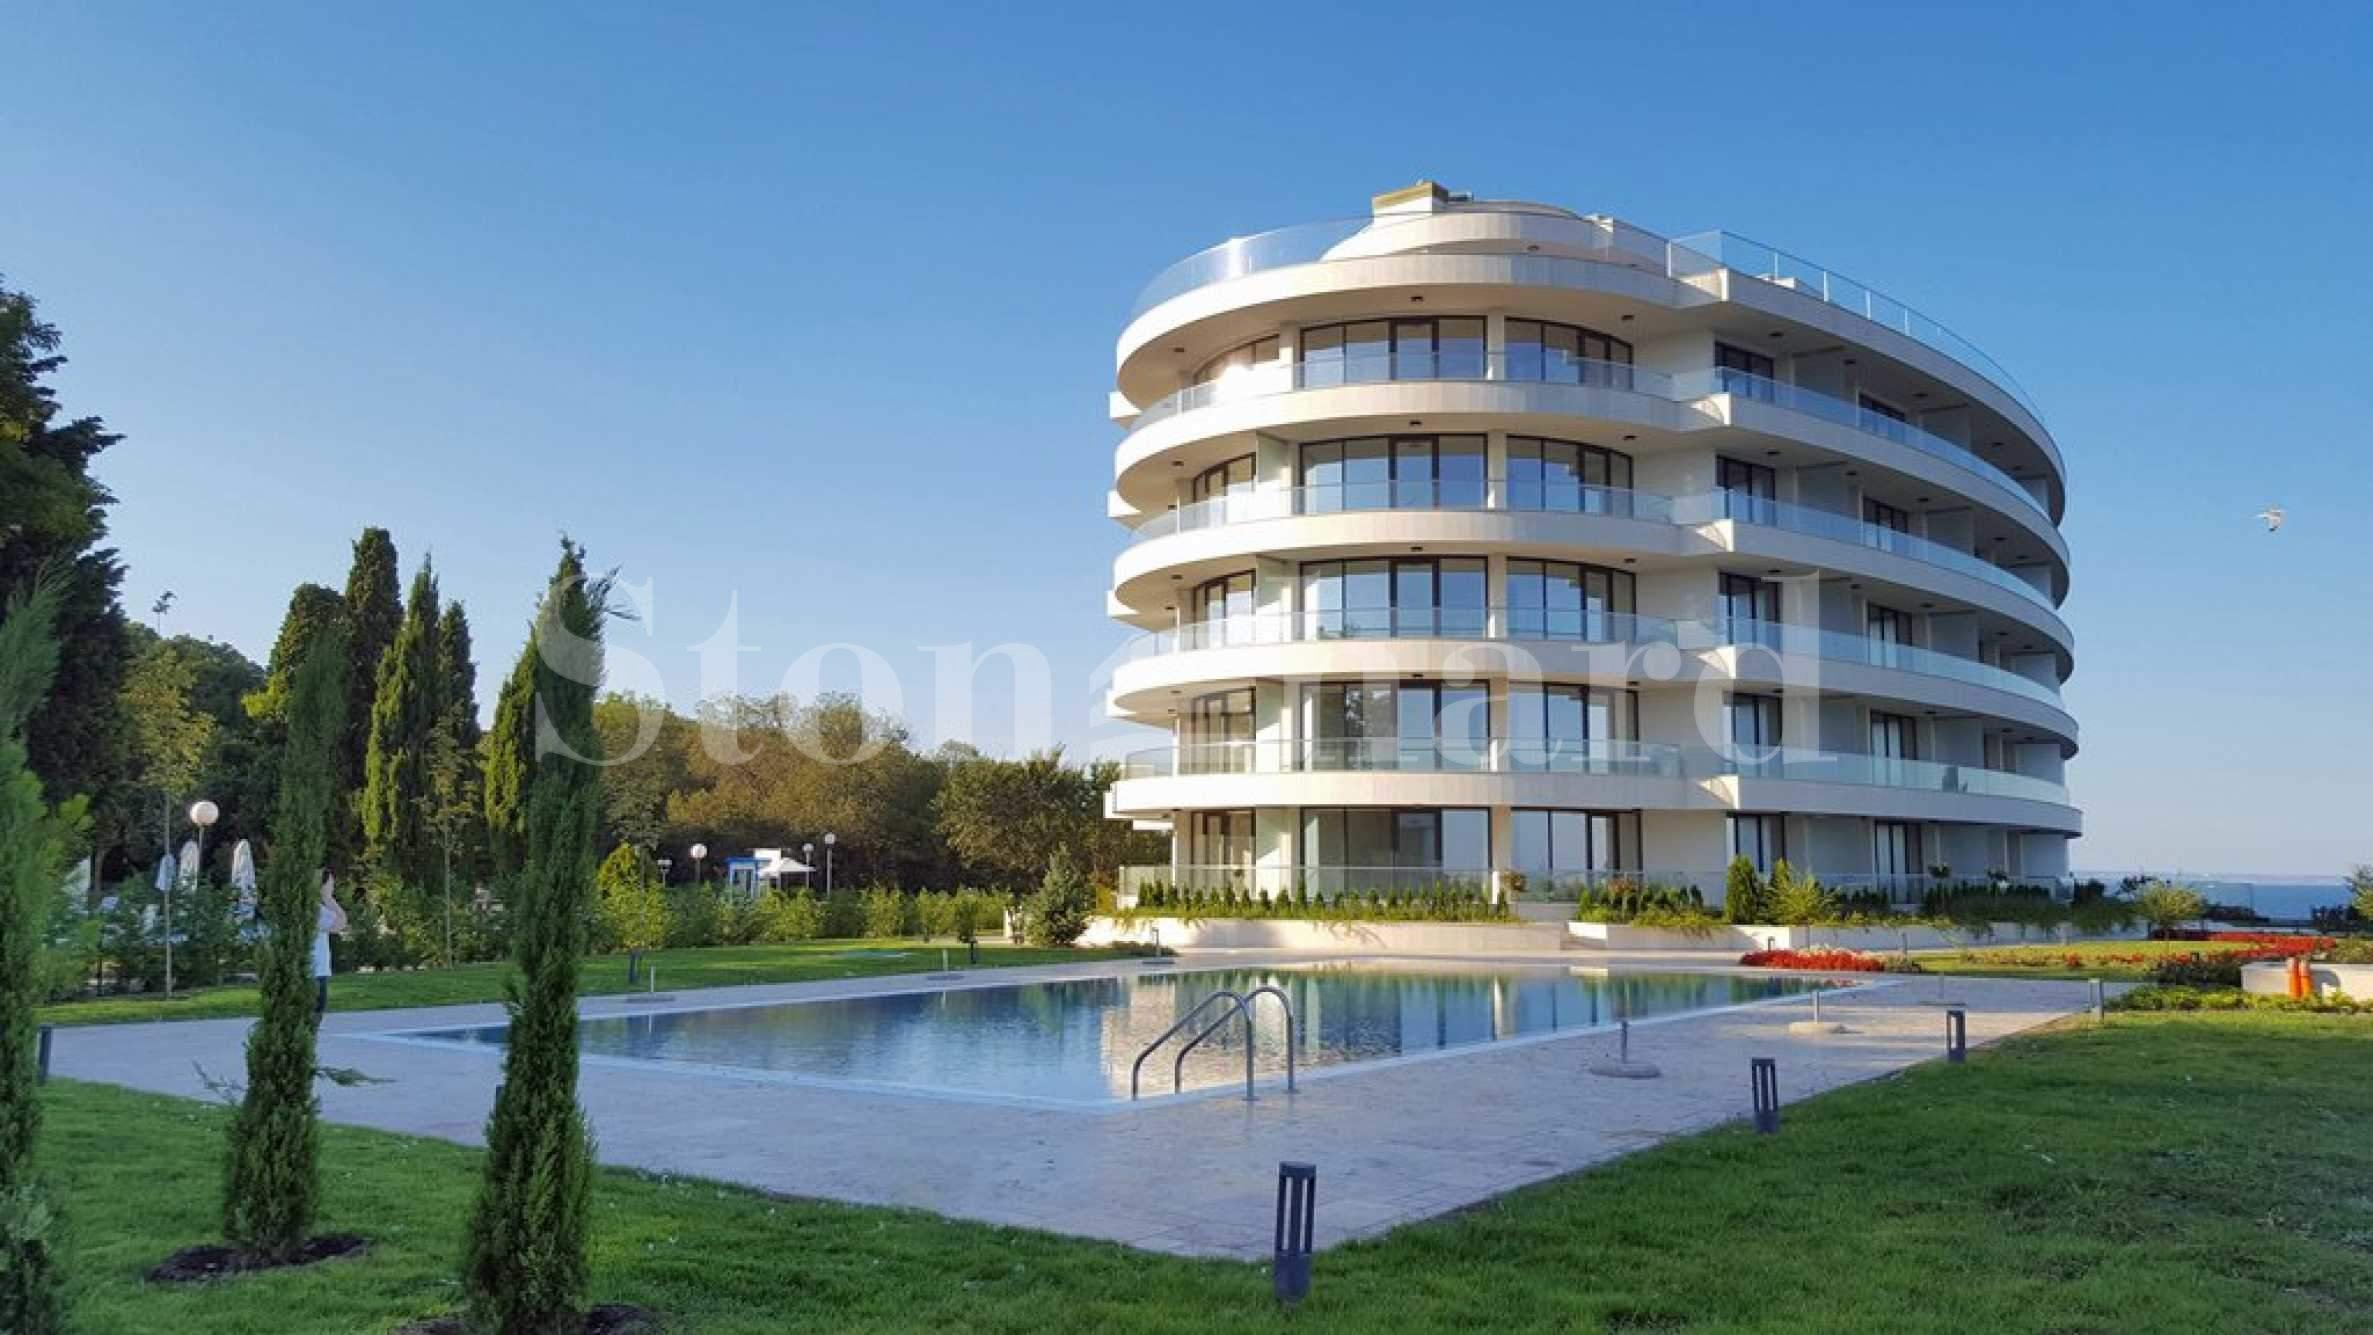 New home or holiday apartments on the beach1 - Stonehard